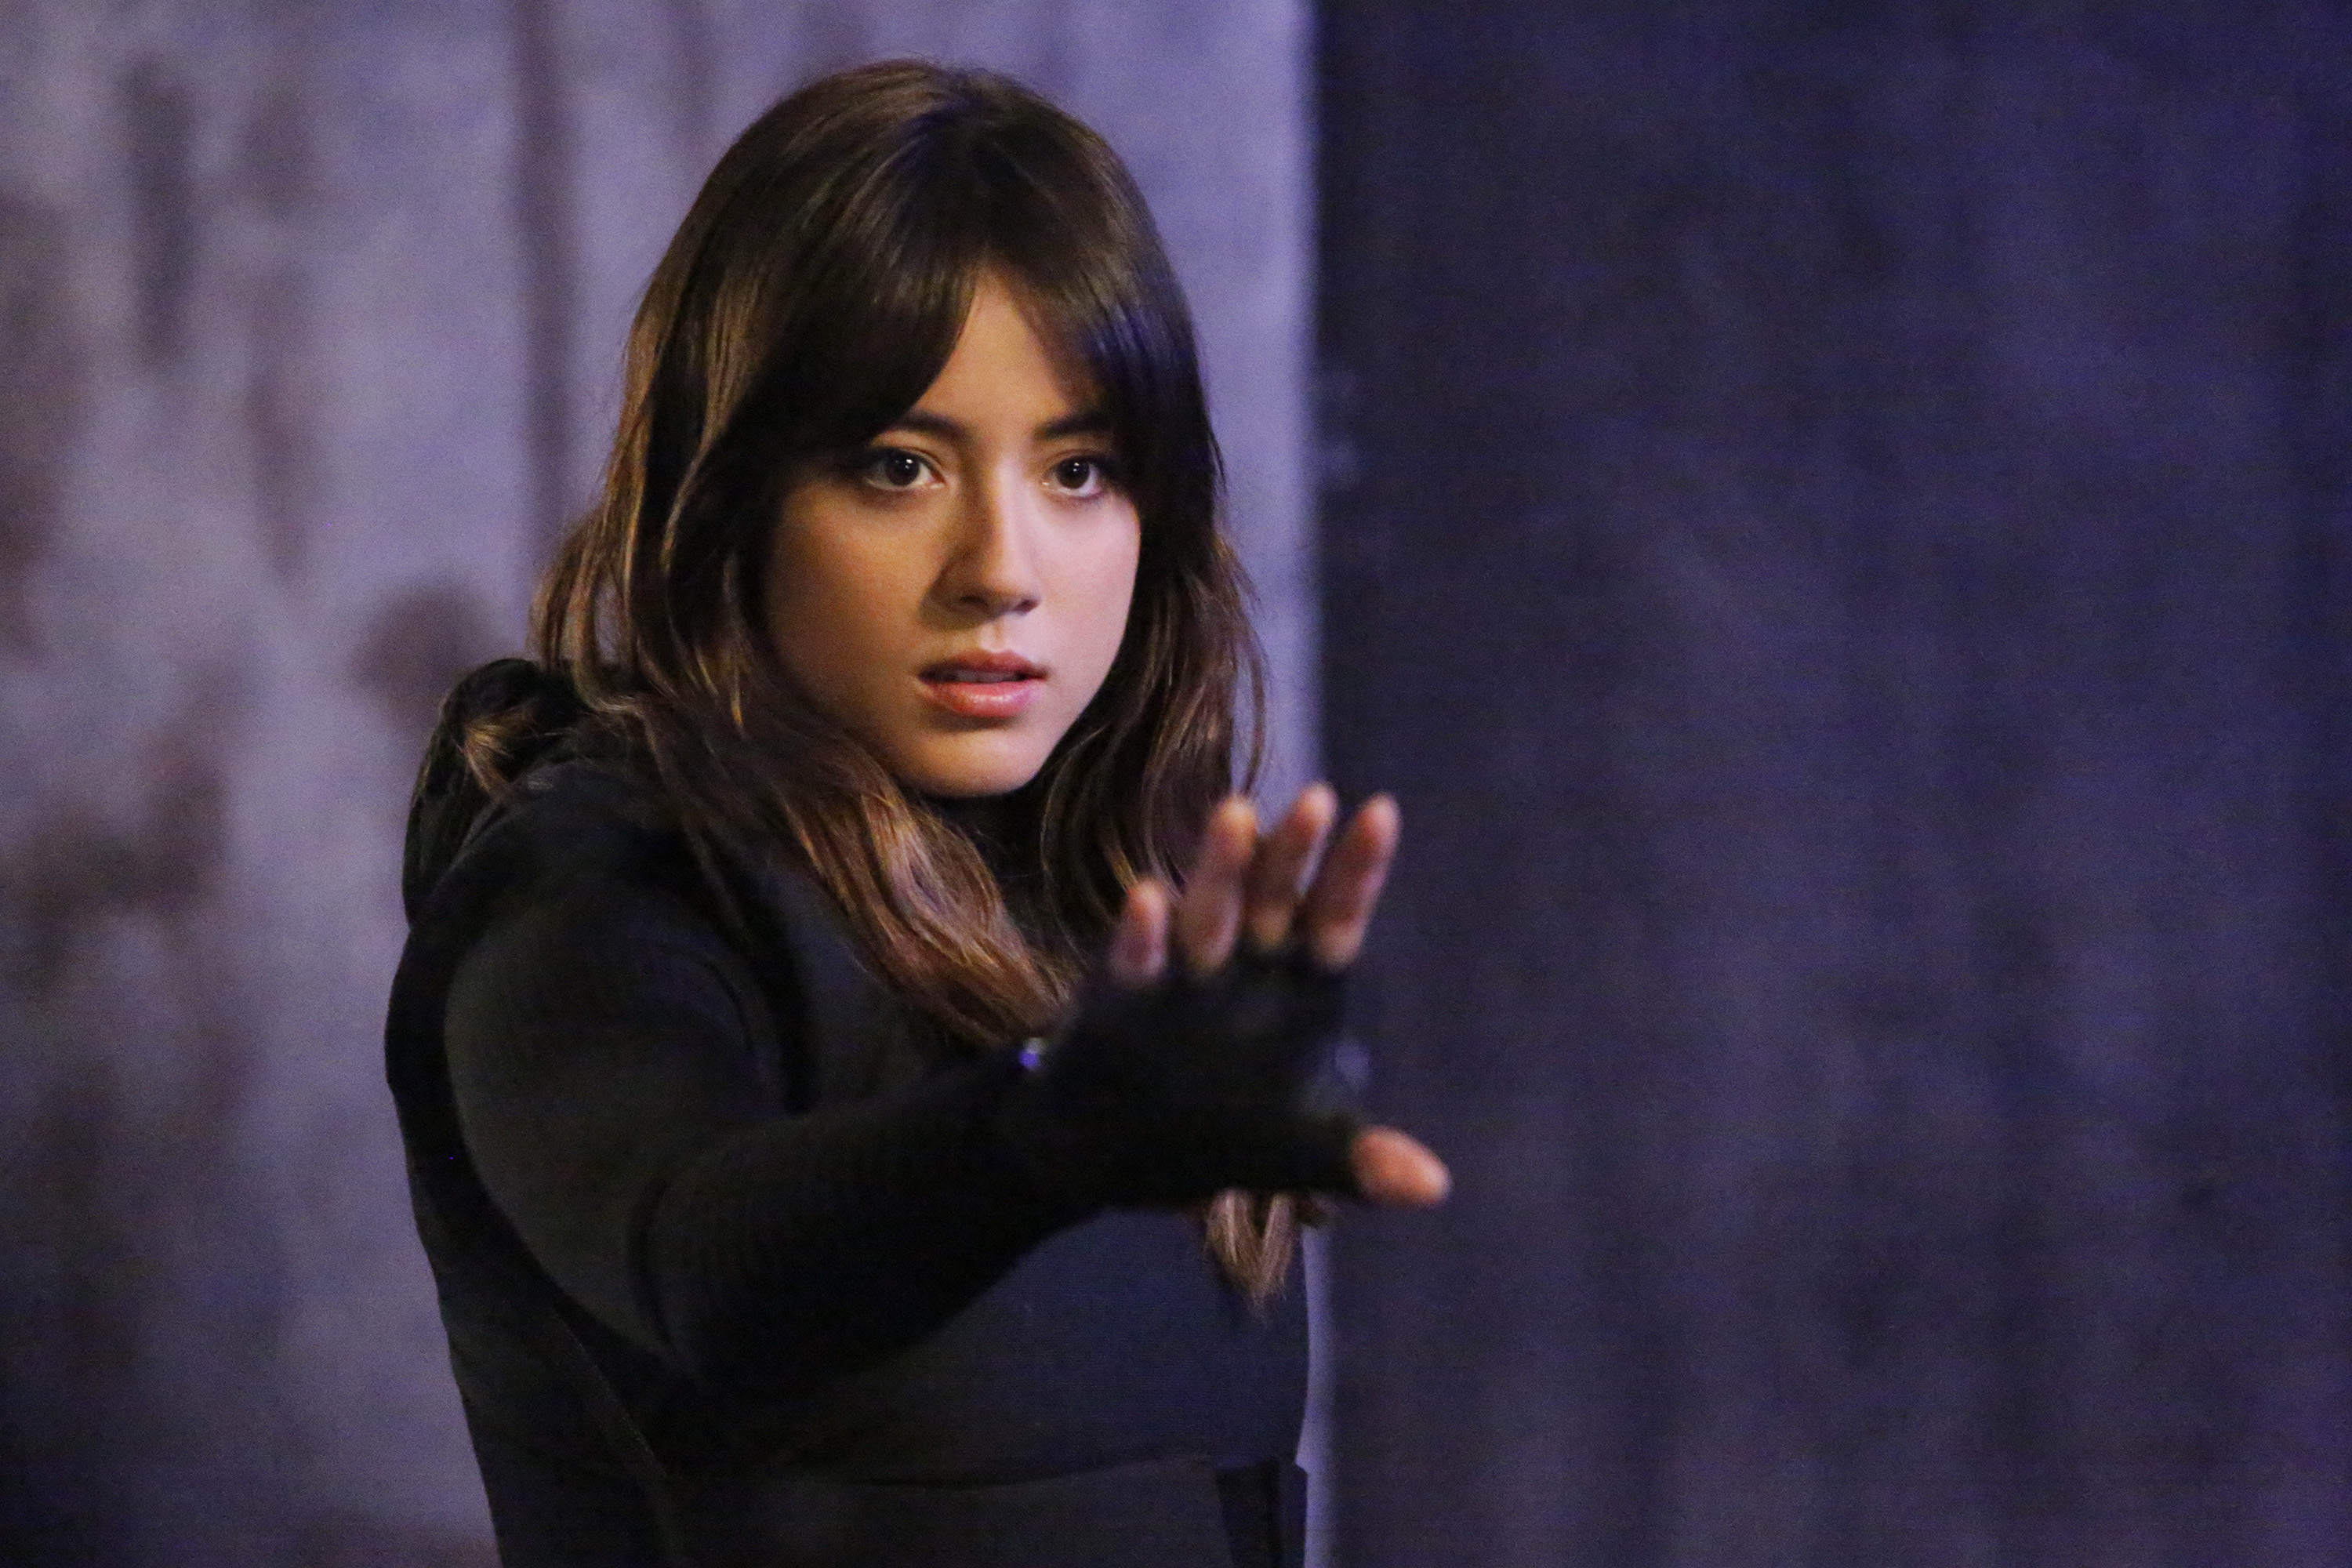 Marvel's Agents of S.H.I.E.L.D. Season 2 19